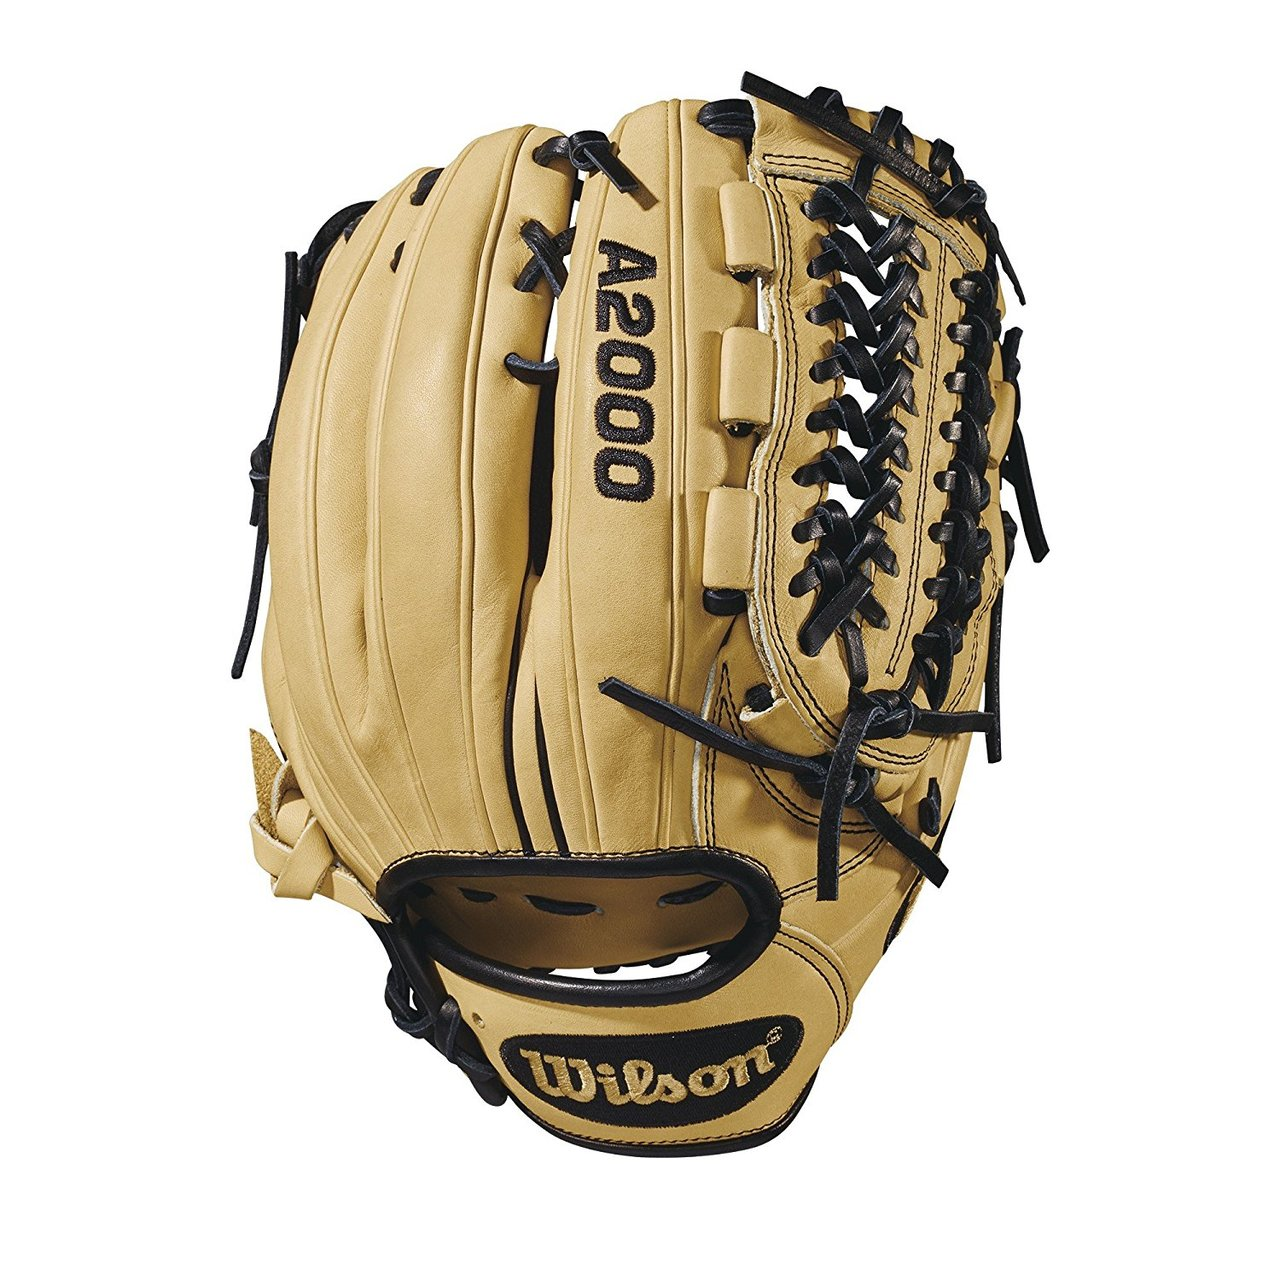 wilson-2018-a2000-d33-pitchers-baseball-glove-right-hand-throw-11-75 WTARB18D33-RightHandThrow Wilson 887768614737 11.75 Pitcher model closed Pro laced web Gap welting for a